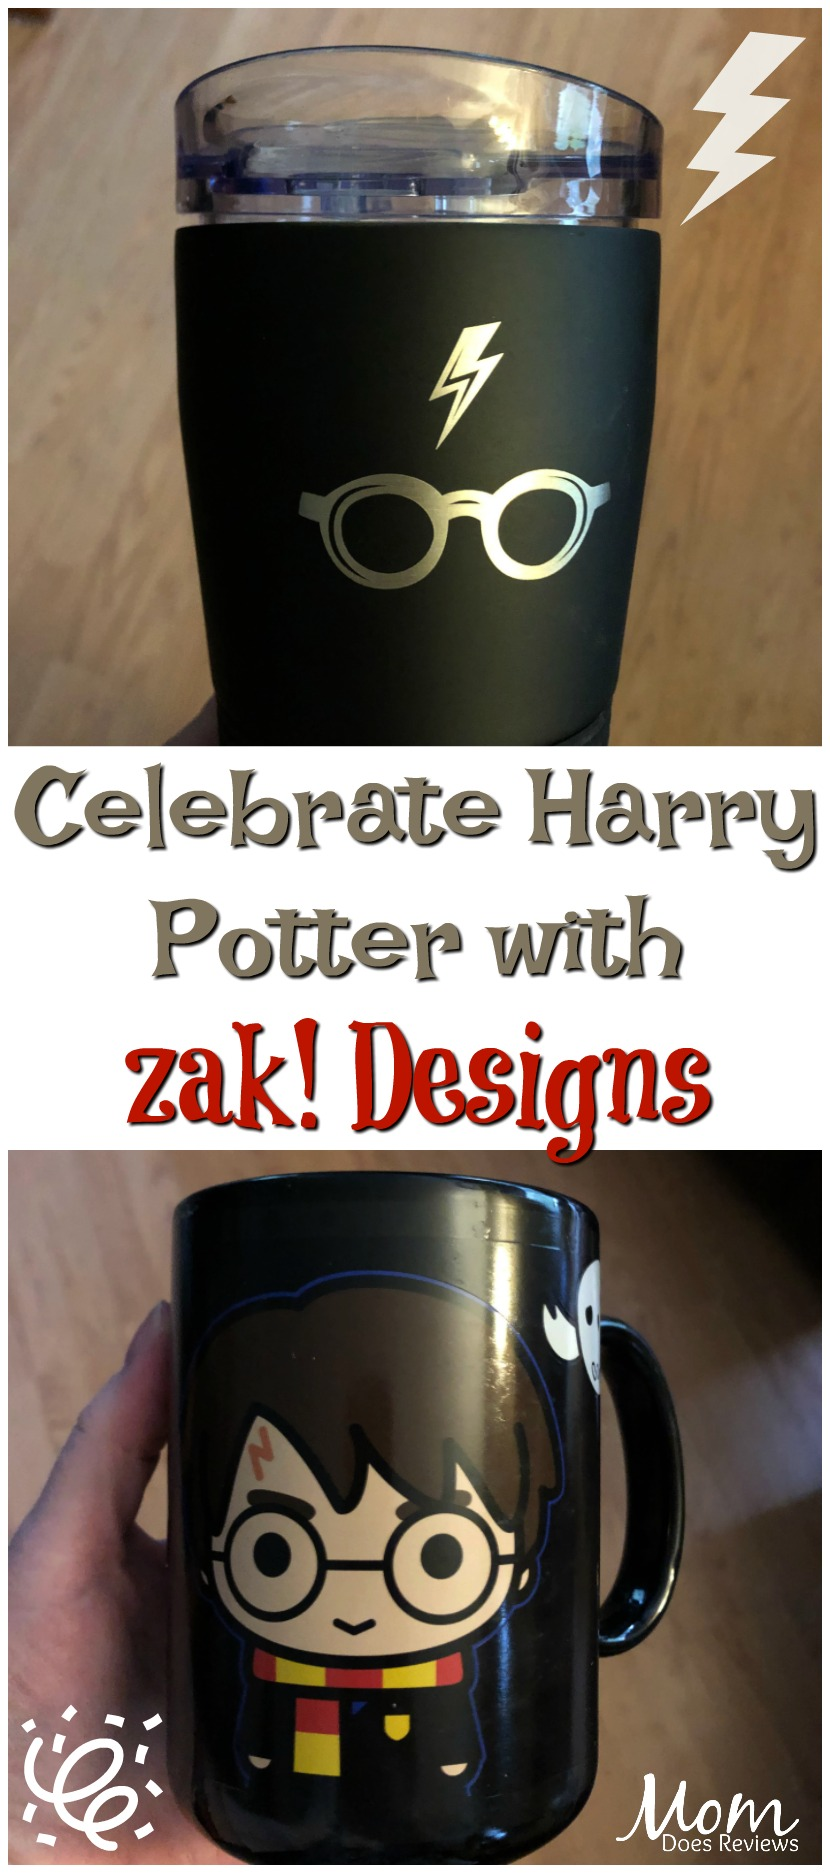 Celebrate the Magic of Harry Potter with Zak Designs #MegaChristmas19 #harrypotter #zakdesigns